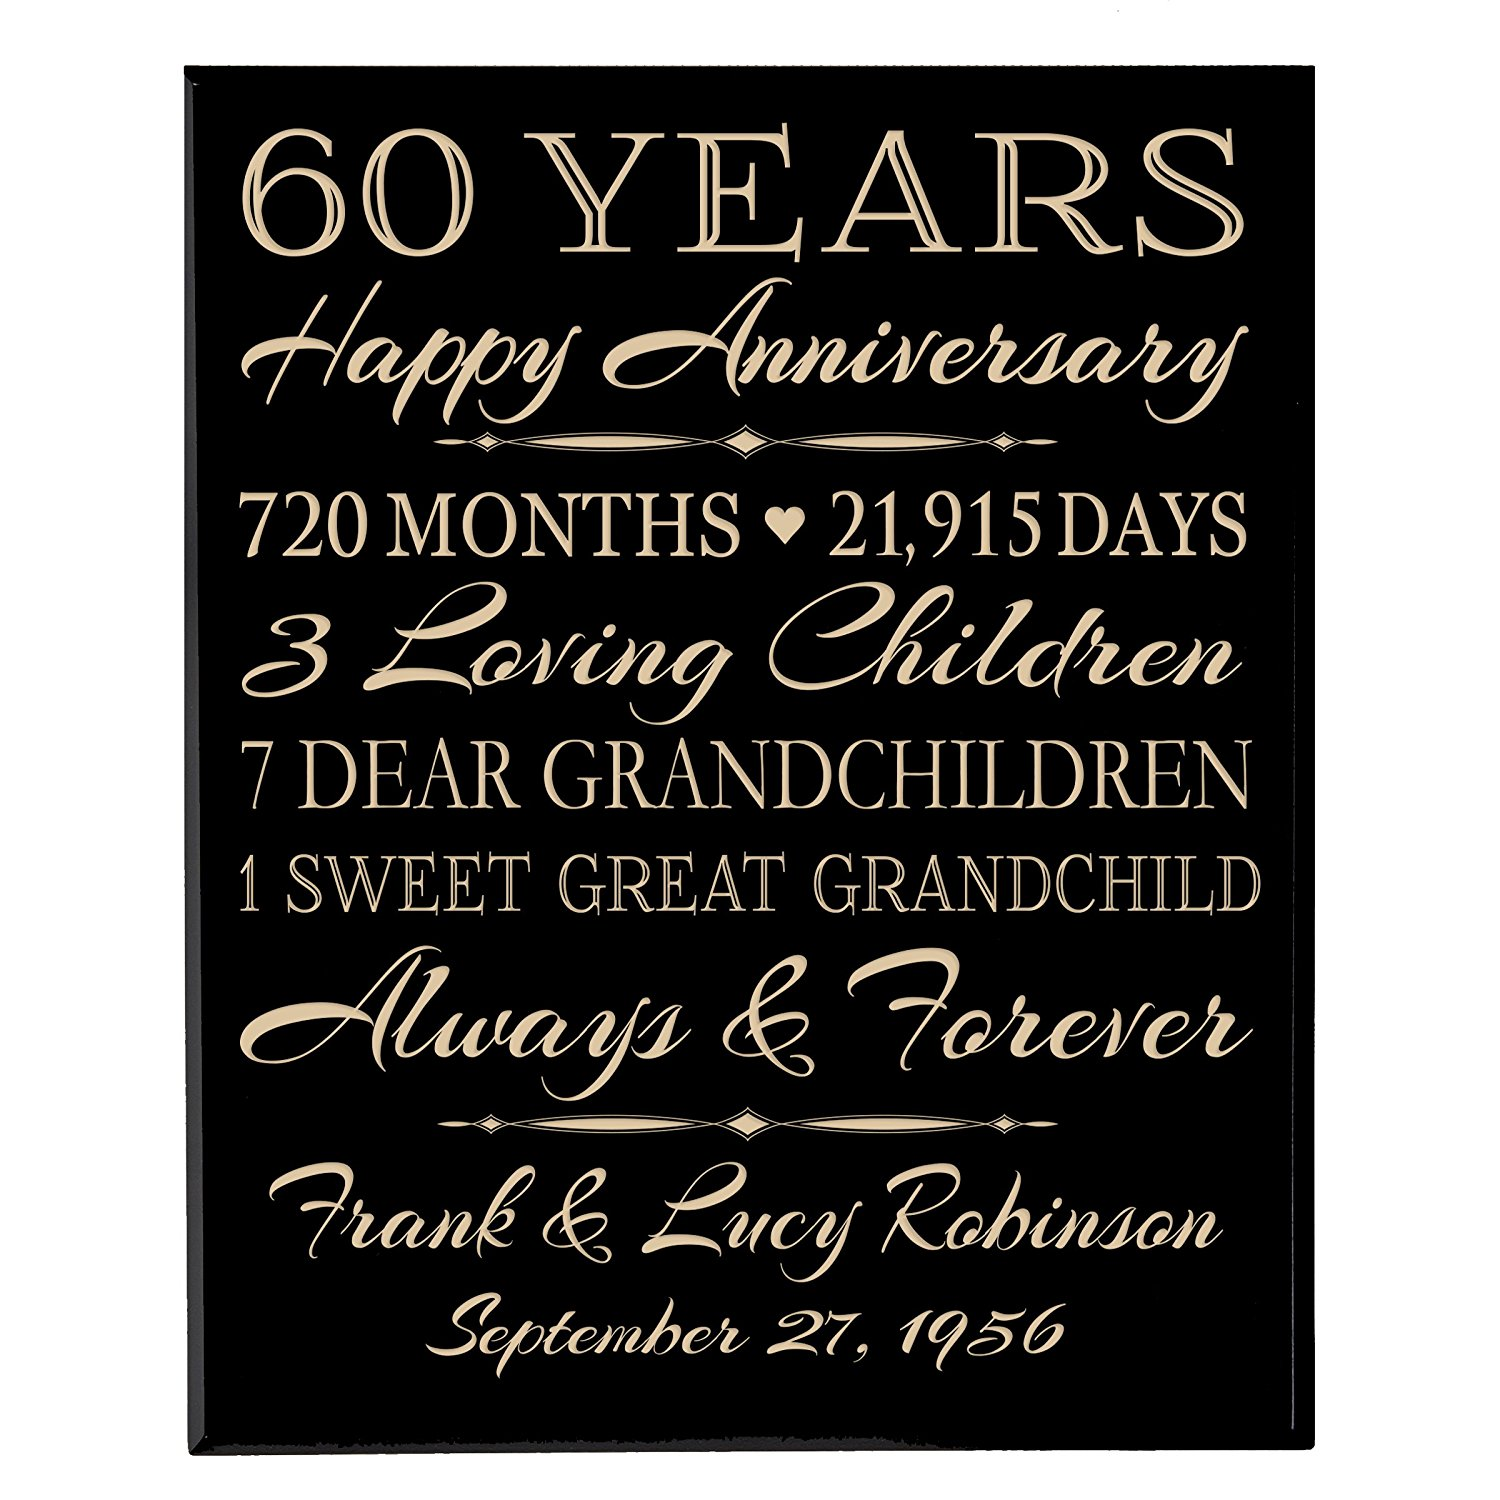 """Personalized 60th Anniversary Gifts for him her Couple parents, Custom Made 60 year Anniversary Gifts ideas Wall Plaque 12"""" x 15"""" By Dayspring Milestones (Black Solid Wood)"""